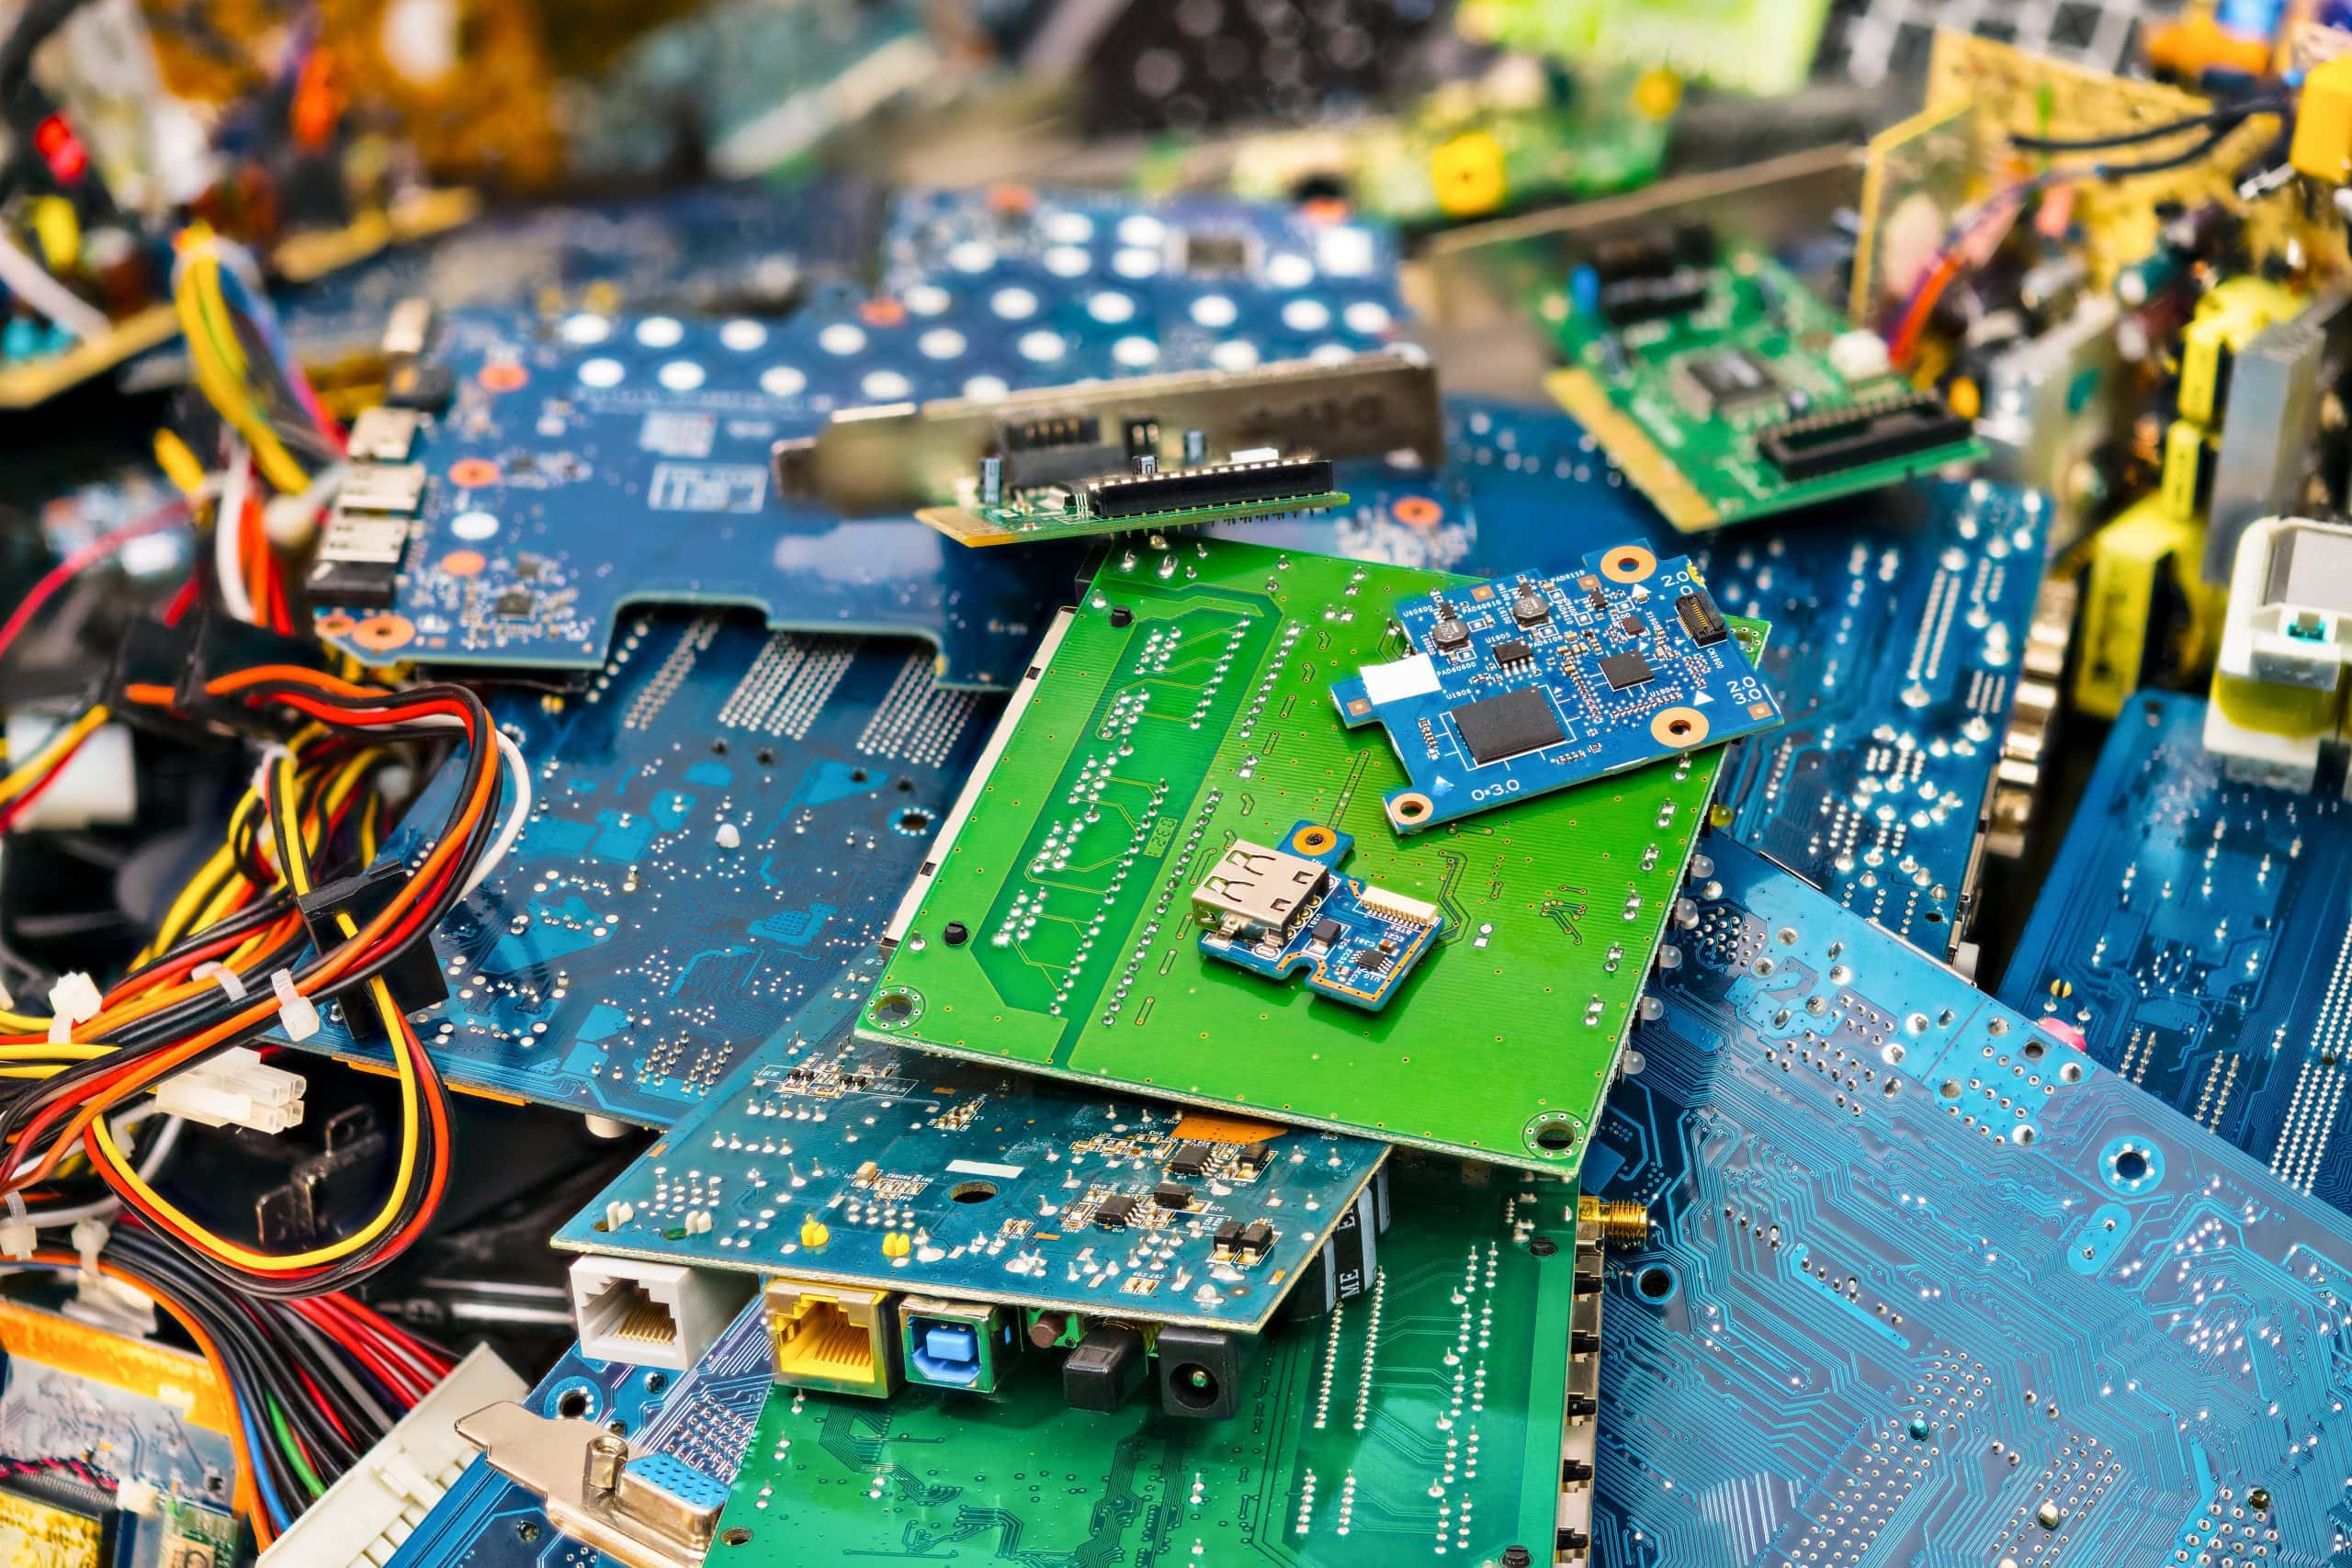 BTC produces huge amounts of electronic waste that should be talked about